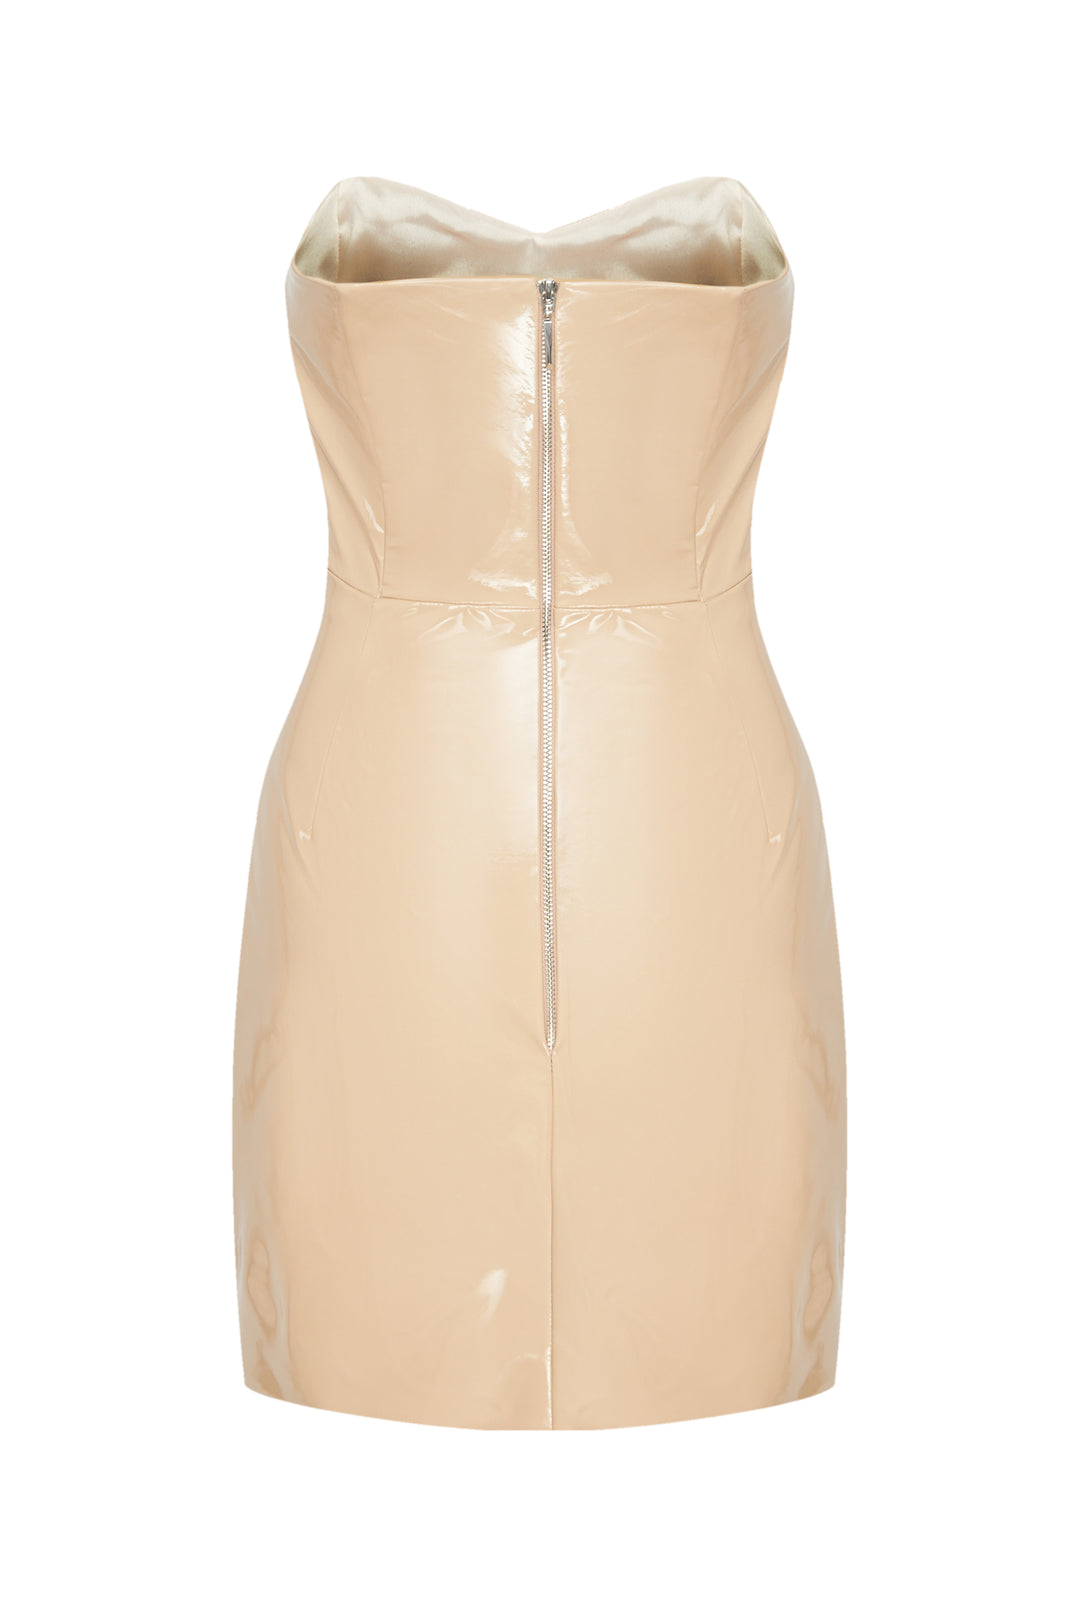 Nude Patent Strapless Mini Dress